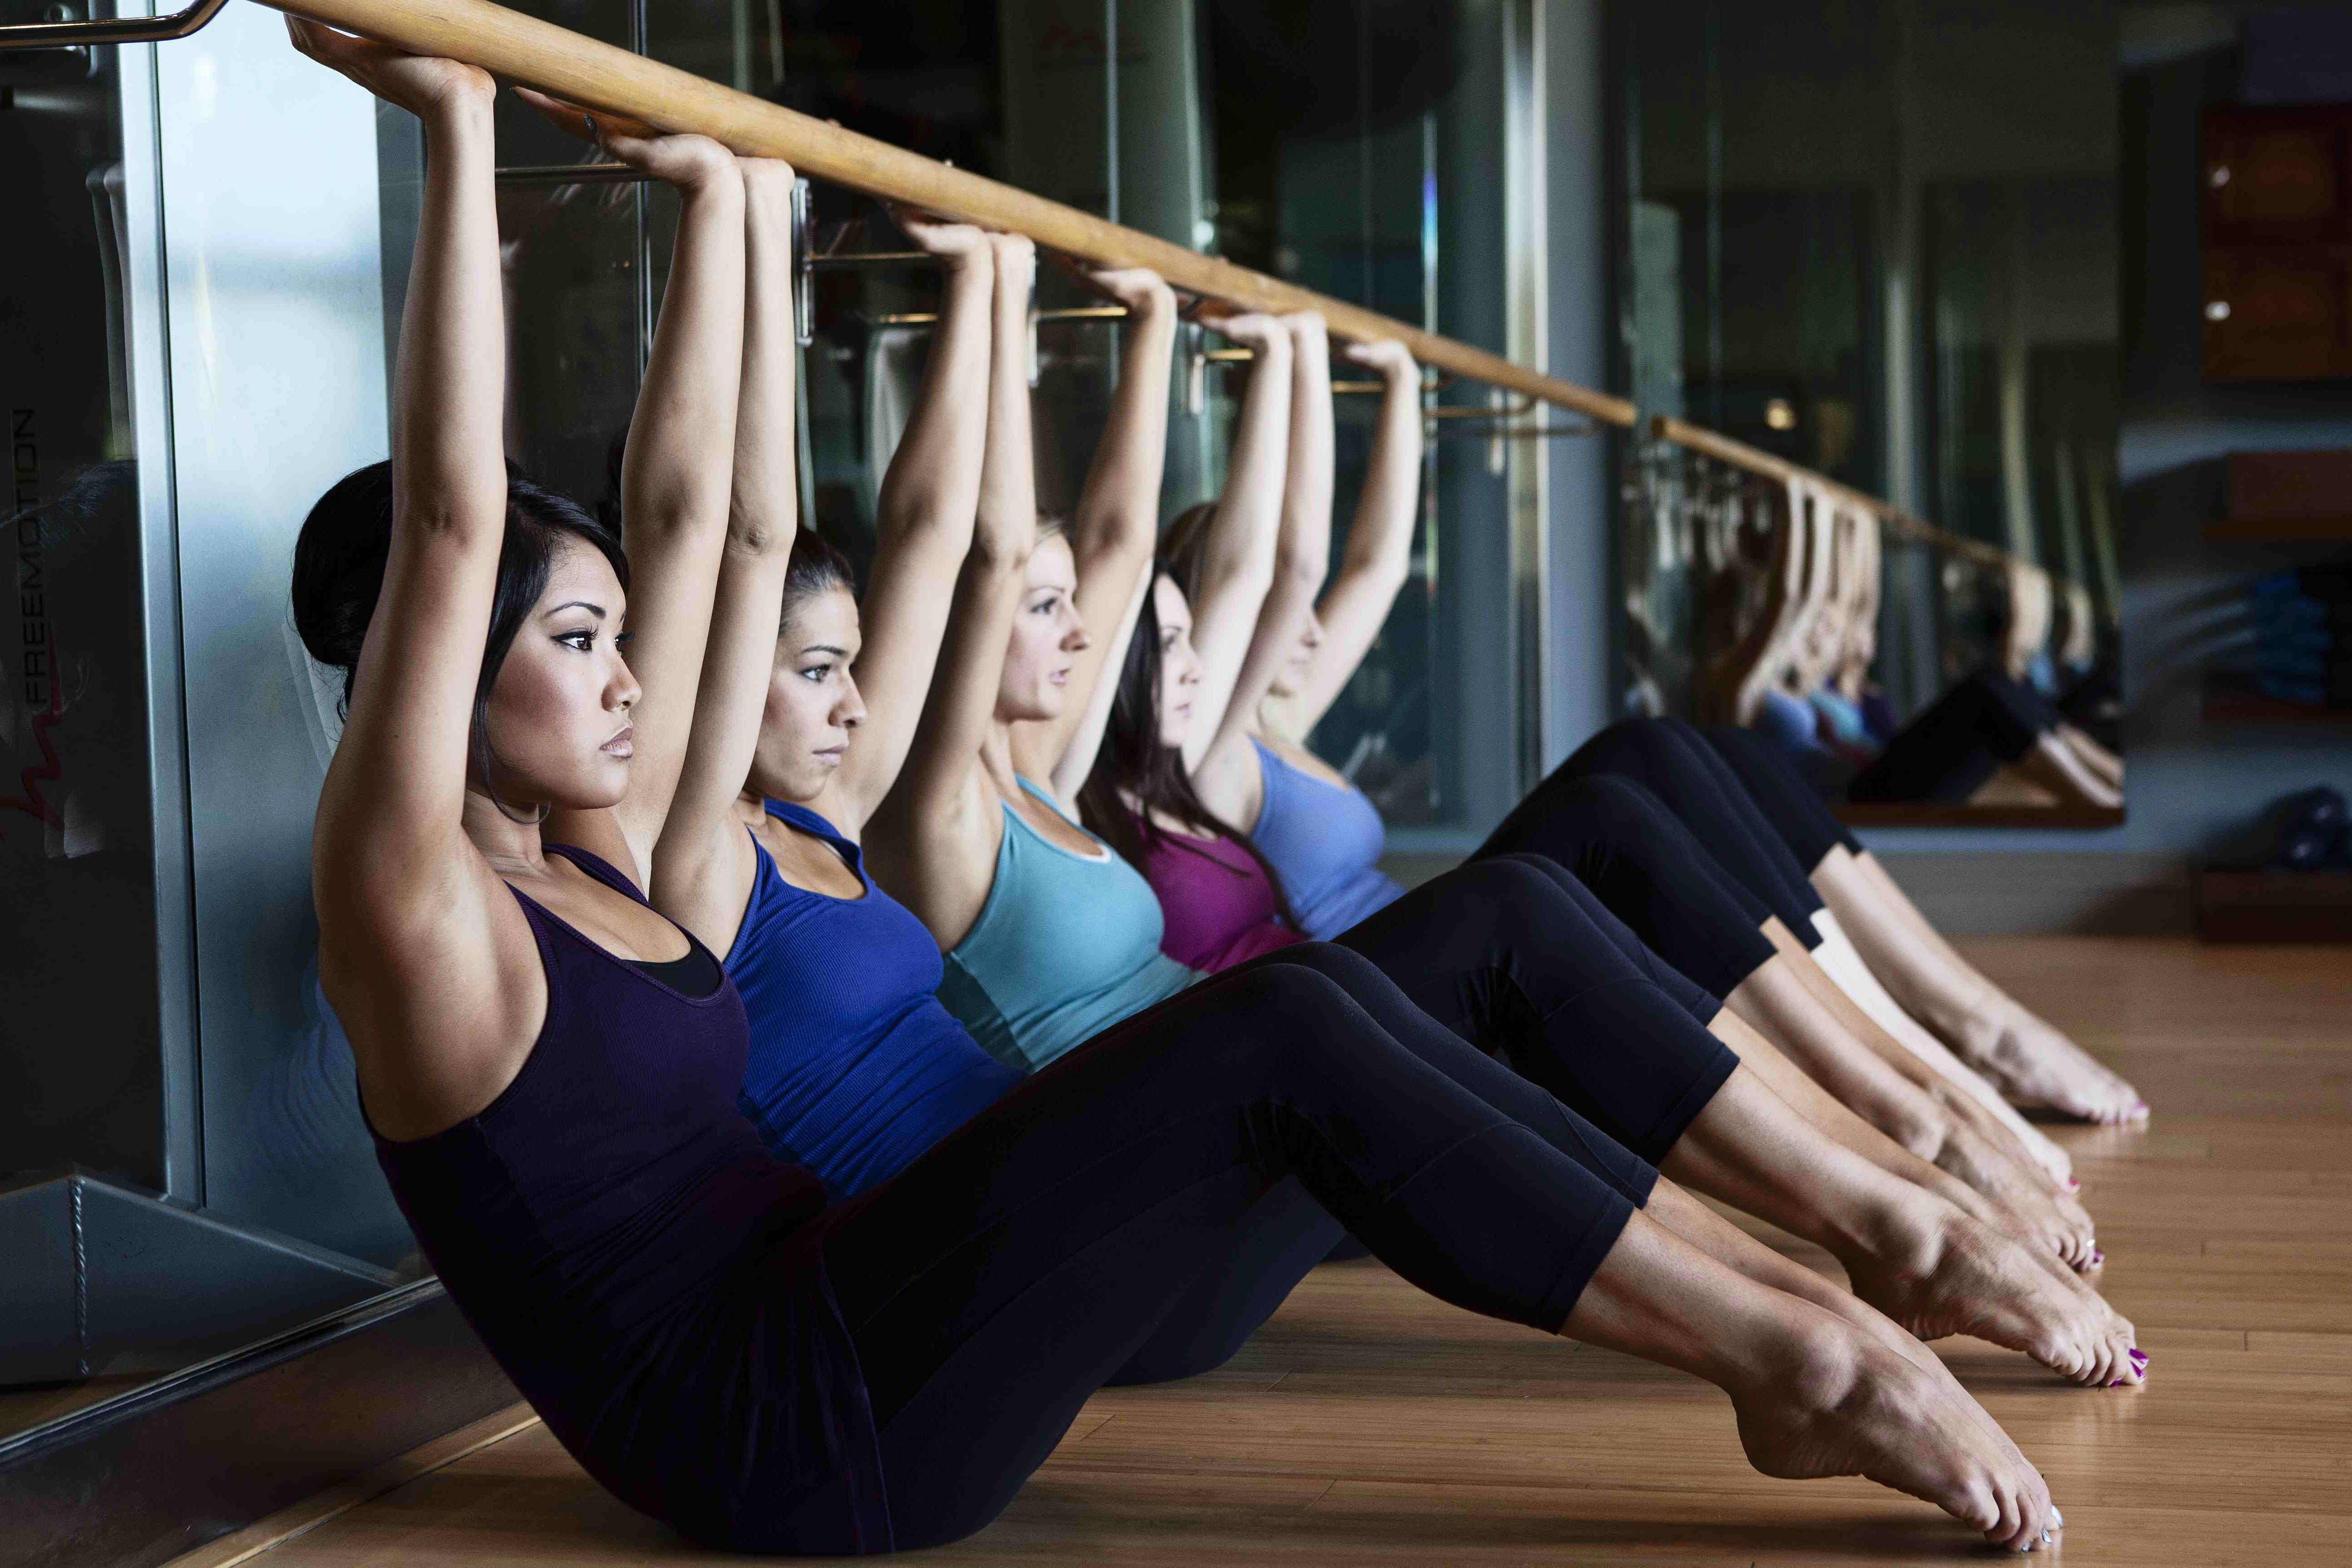 Idea by am london on leisure time barre workout